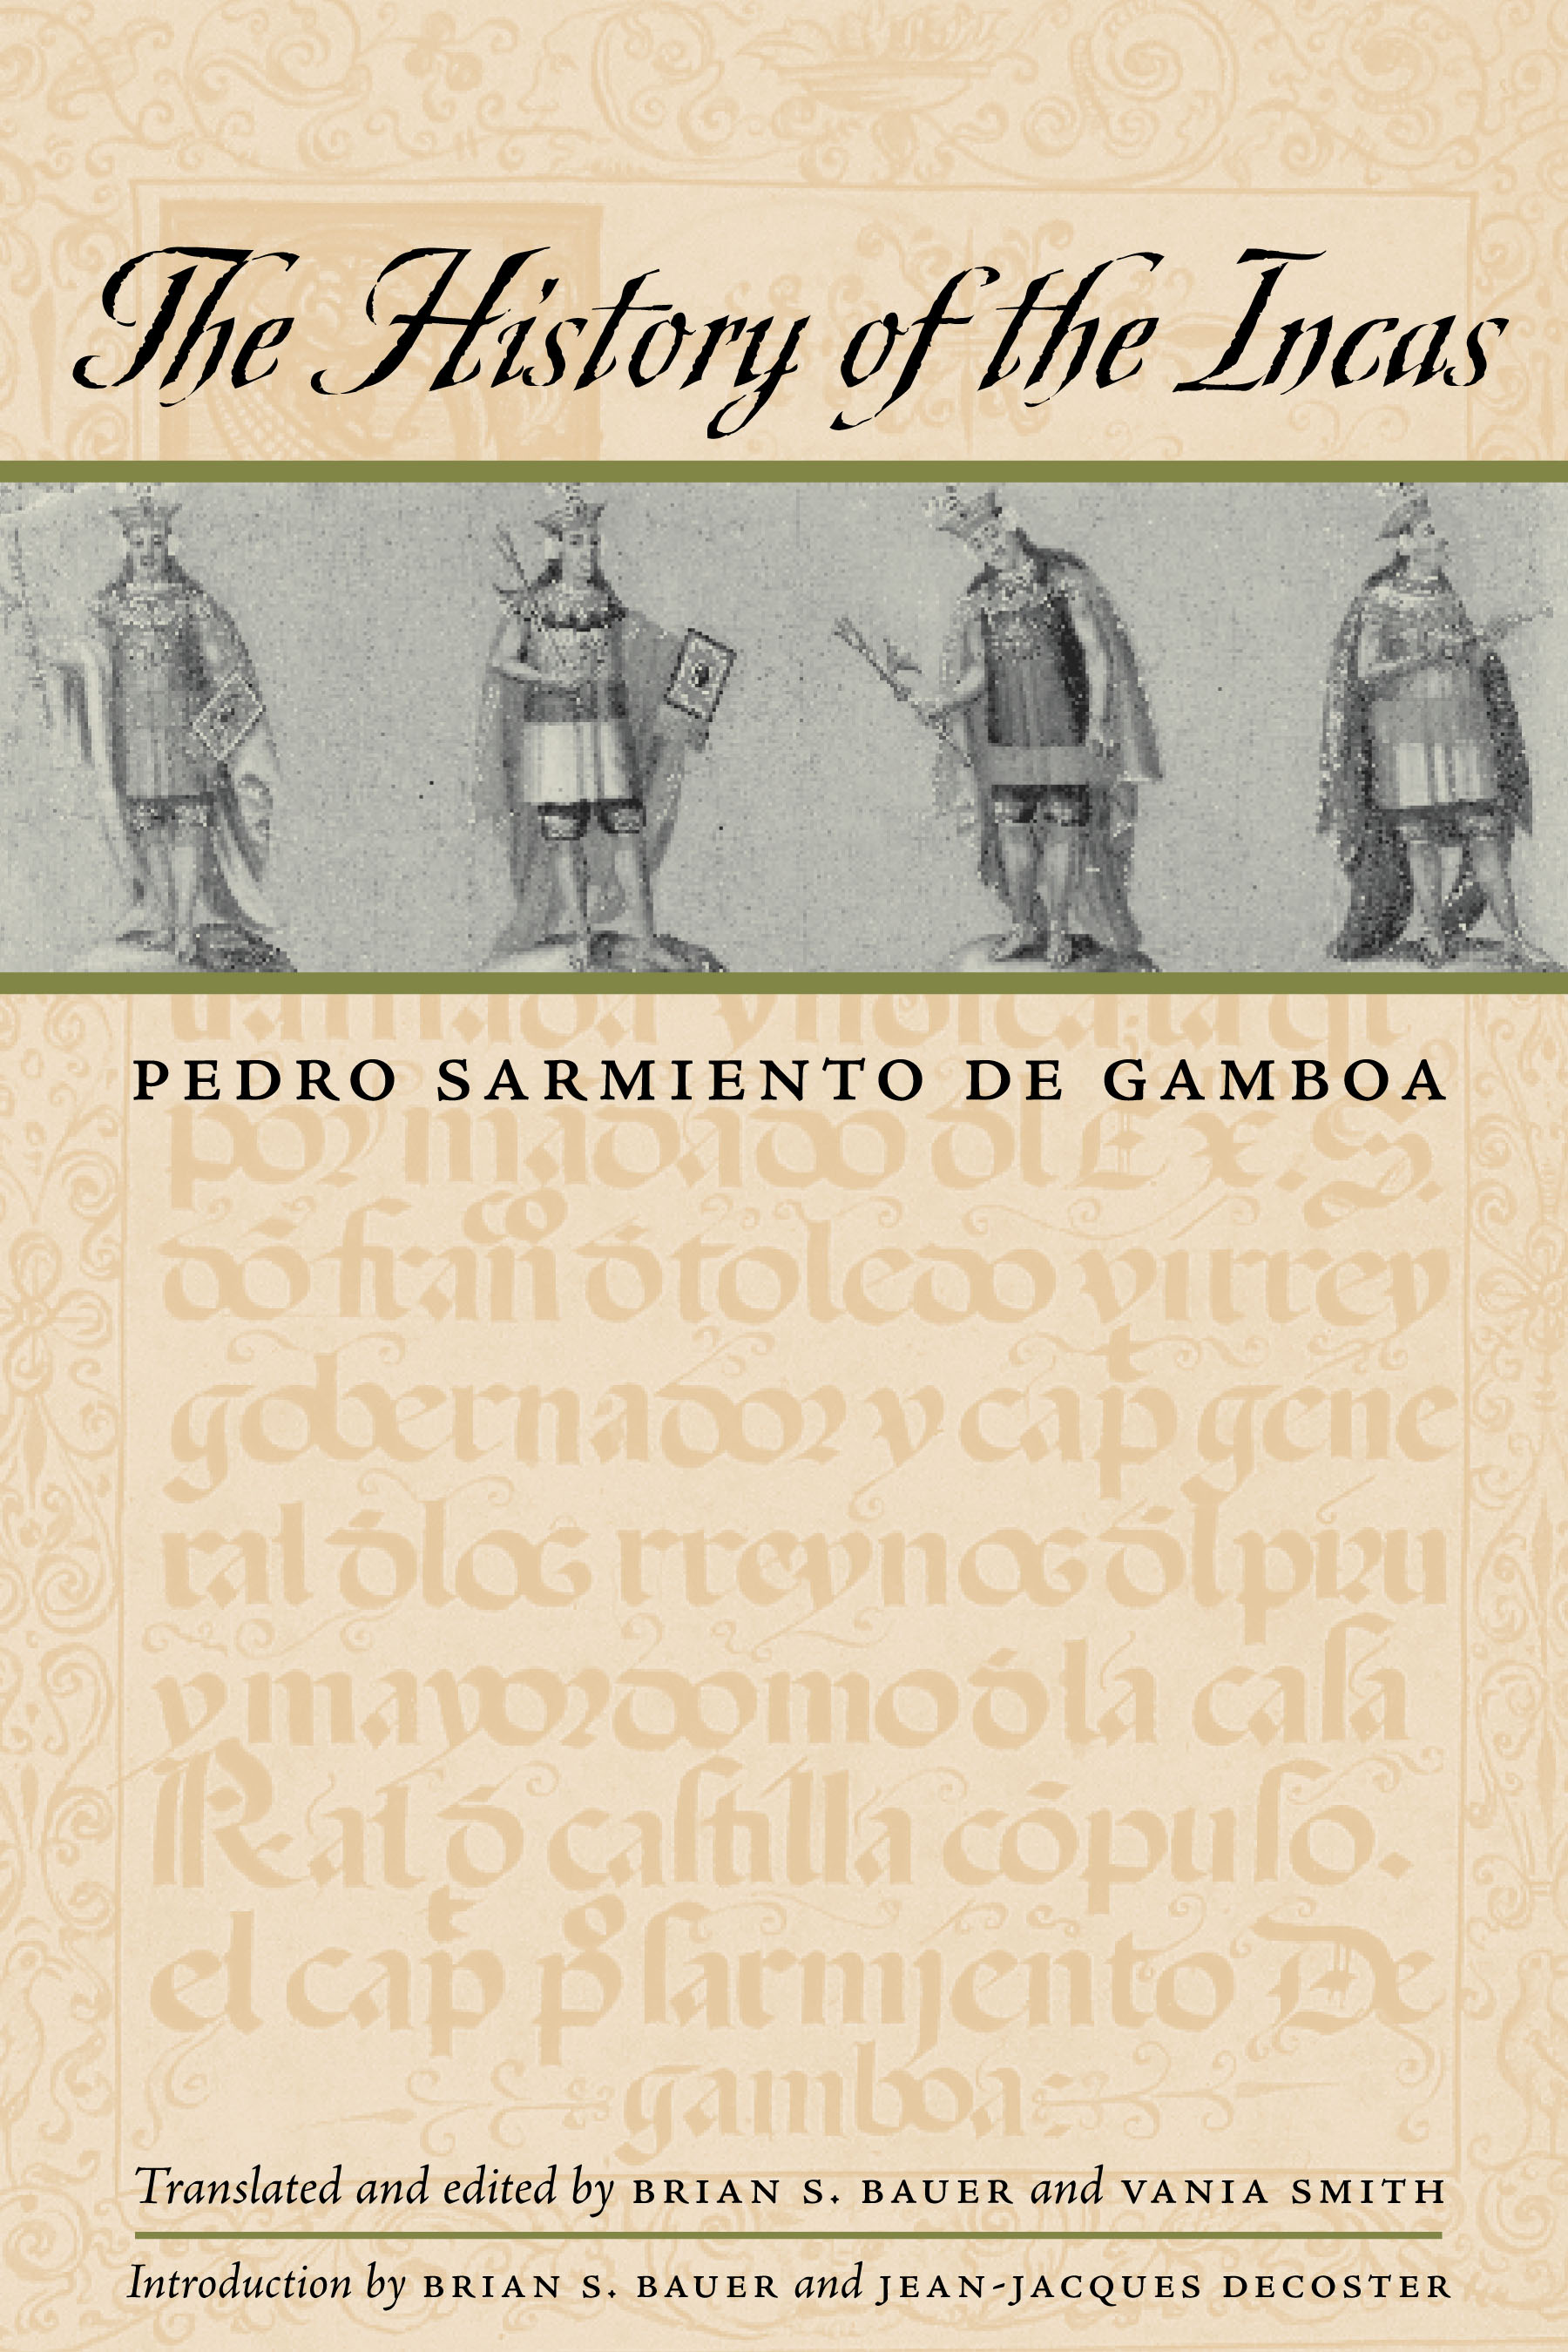 Cover of The History of the Incas